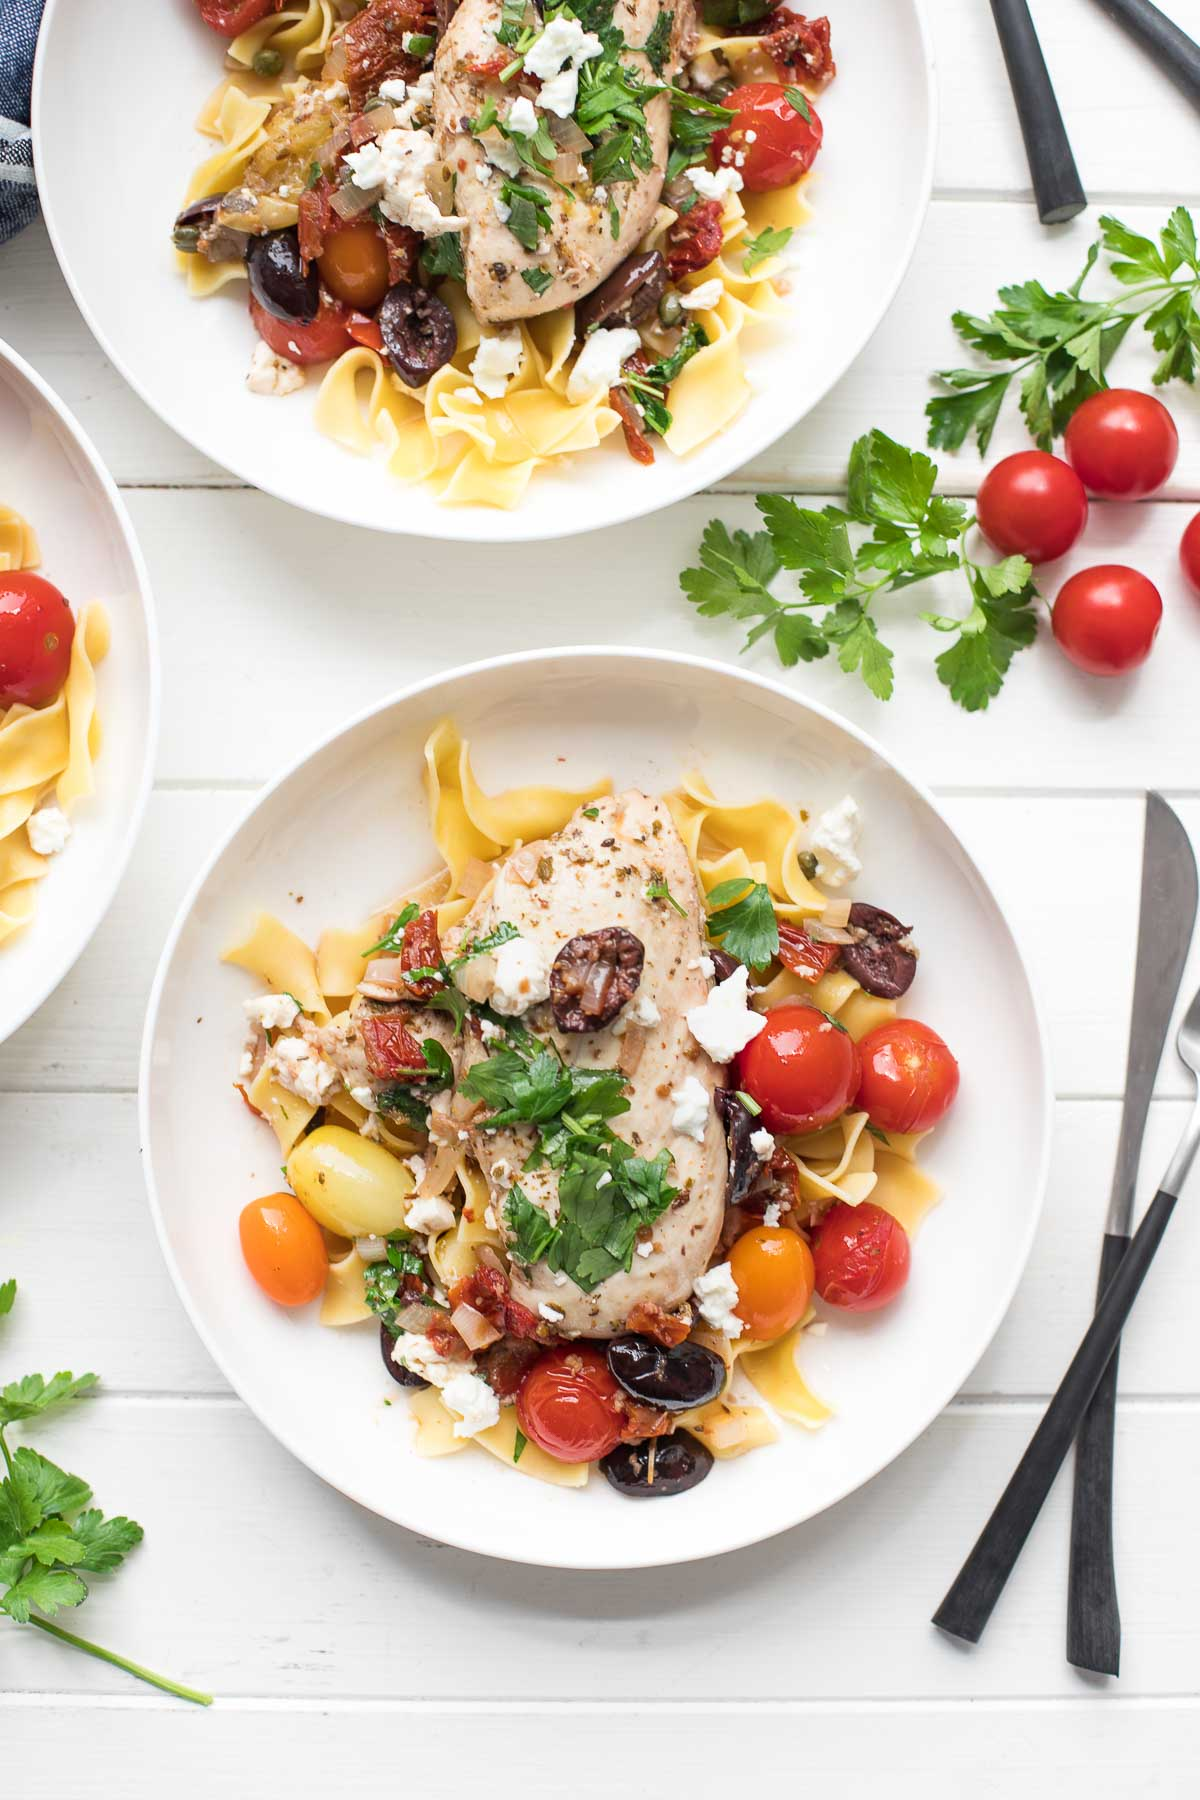 Mediterranean Chicken Skillet with olives, sun-dried tomatoes and egg noodles